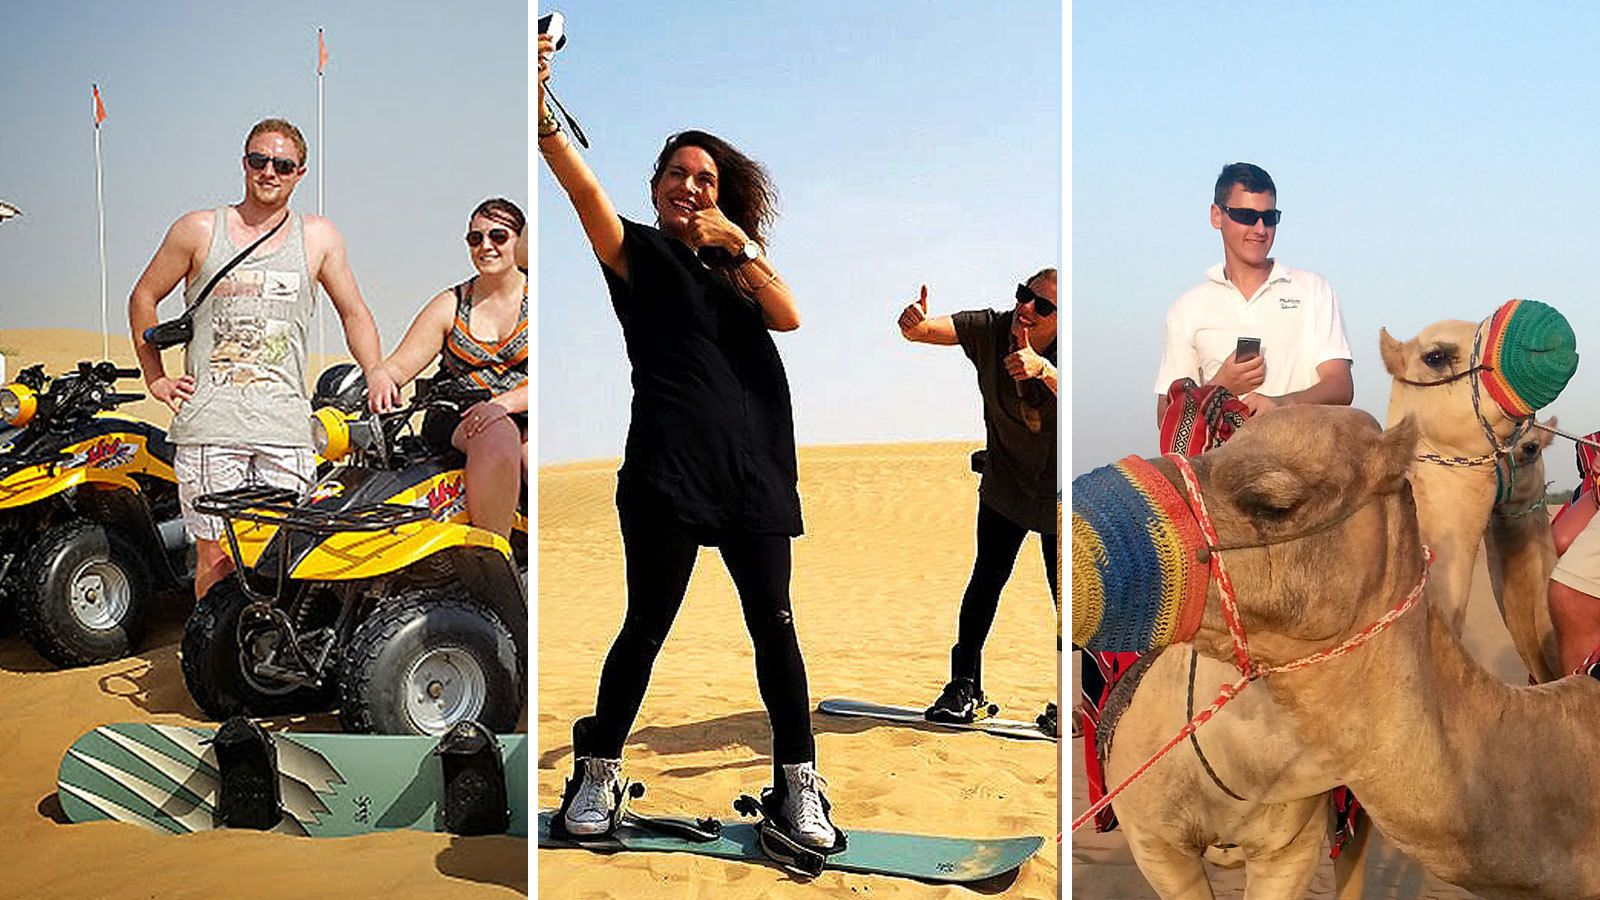 Desert Adventure Combo Tour: Quad-Bike, Sandboarding & Camel Safari